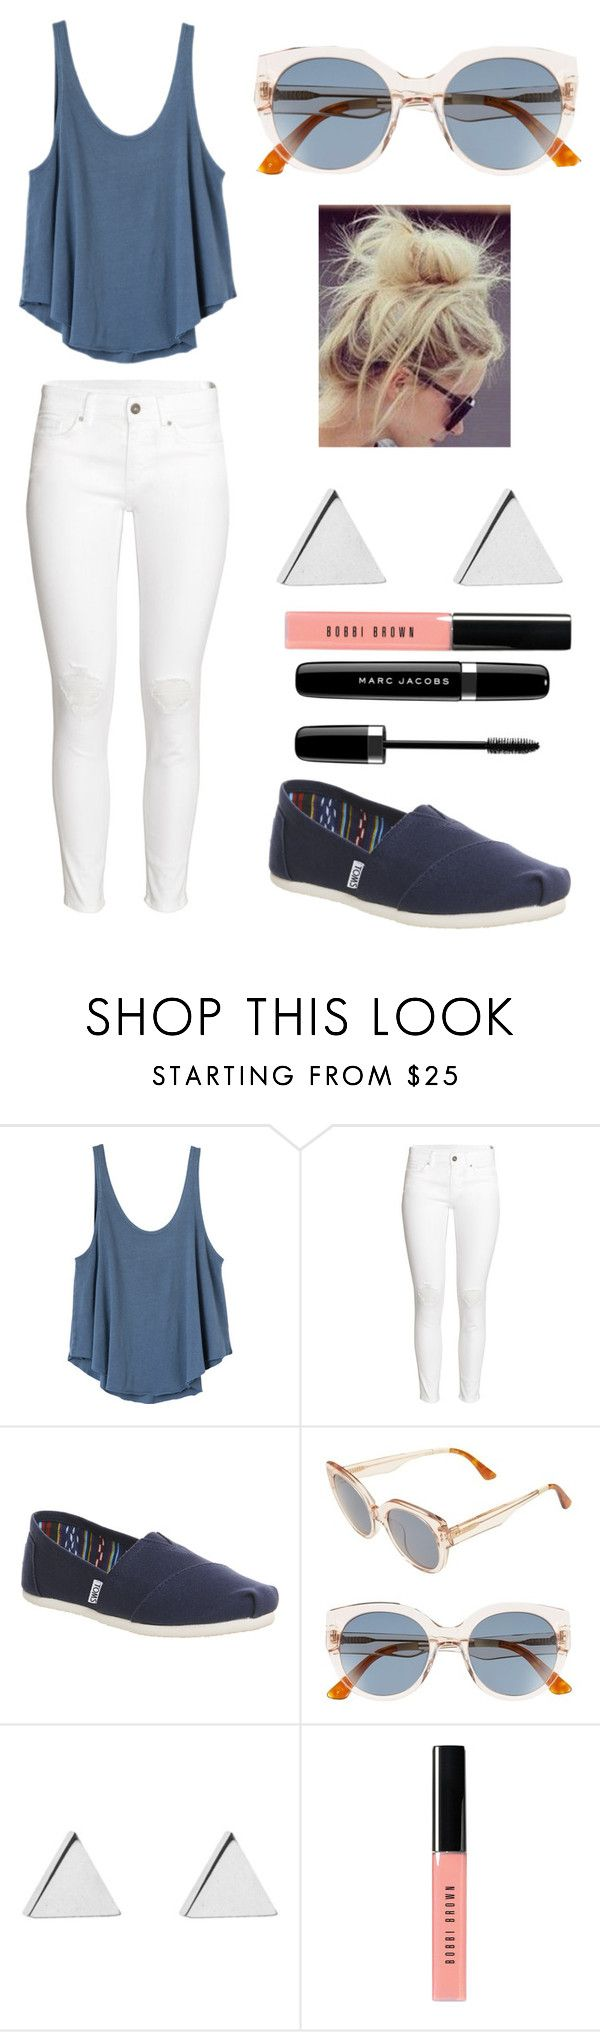 """Day Out"" by phoridavies ❤ liked on Polyvore featuring RVCA, H&M, TOMS, Jennifer Meyer Jewelry, Bobbi Brown Cosmetics, Marc Jacobs, Blue, toms and Phori"